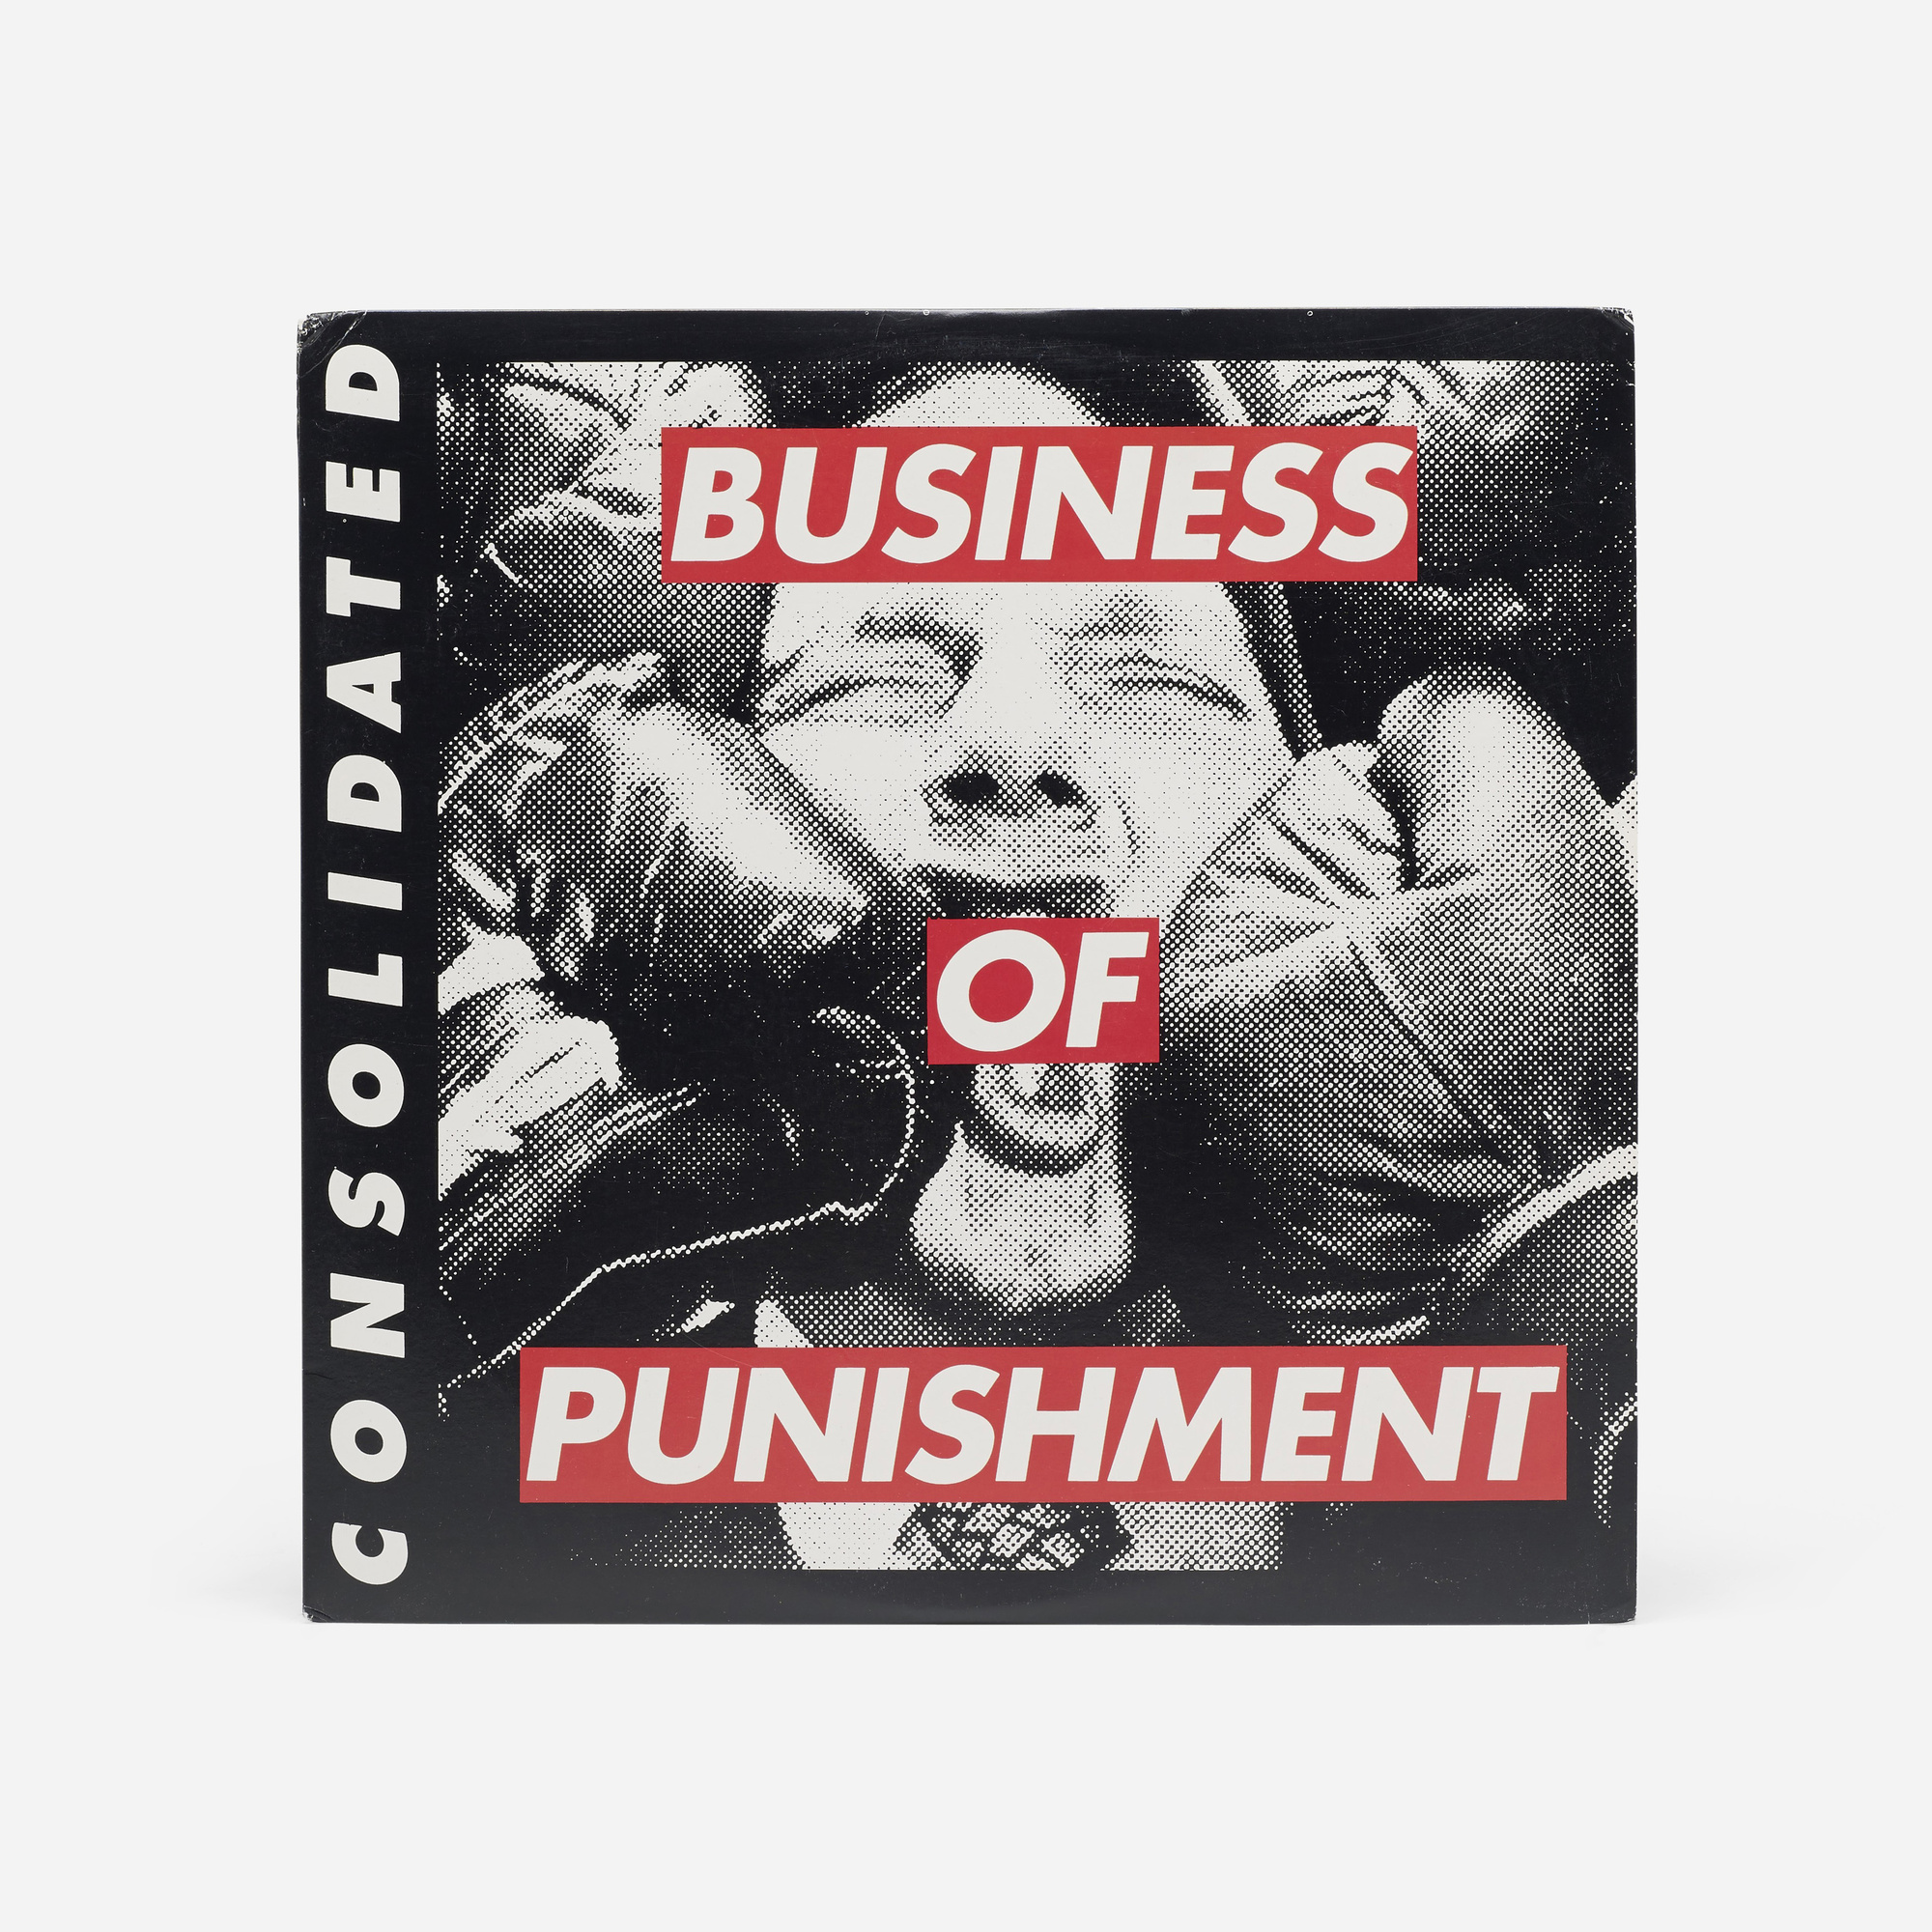 403: Barbara Kruger / Consolidated/Business of Punishment LP (1 of 1)